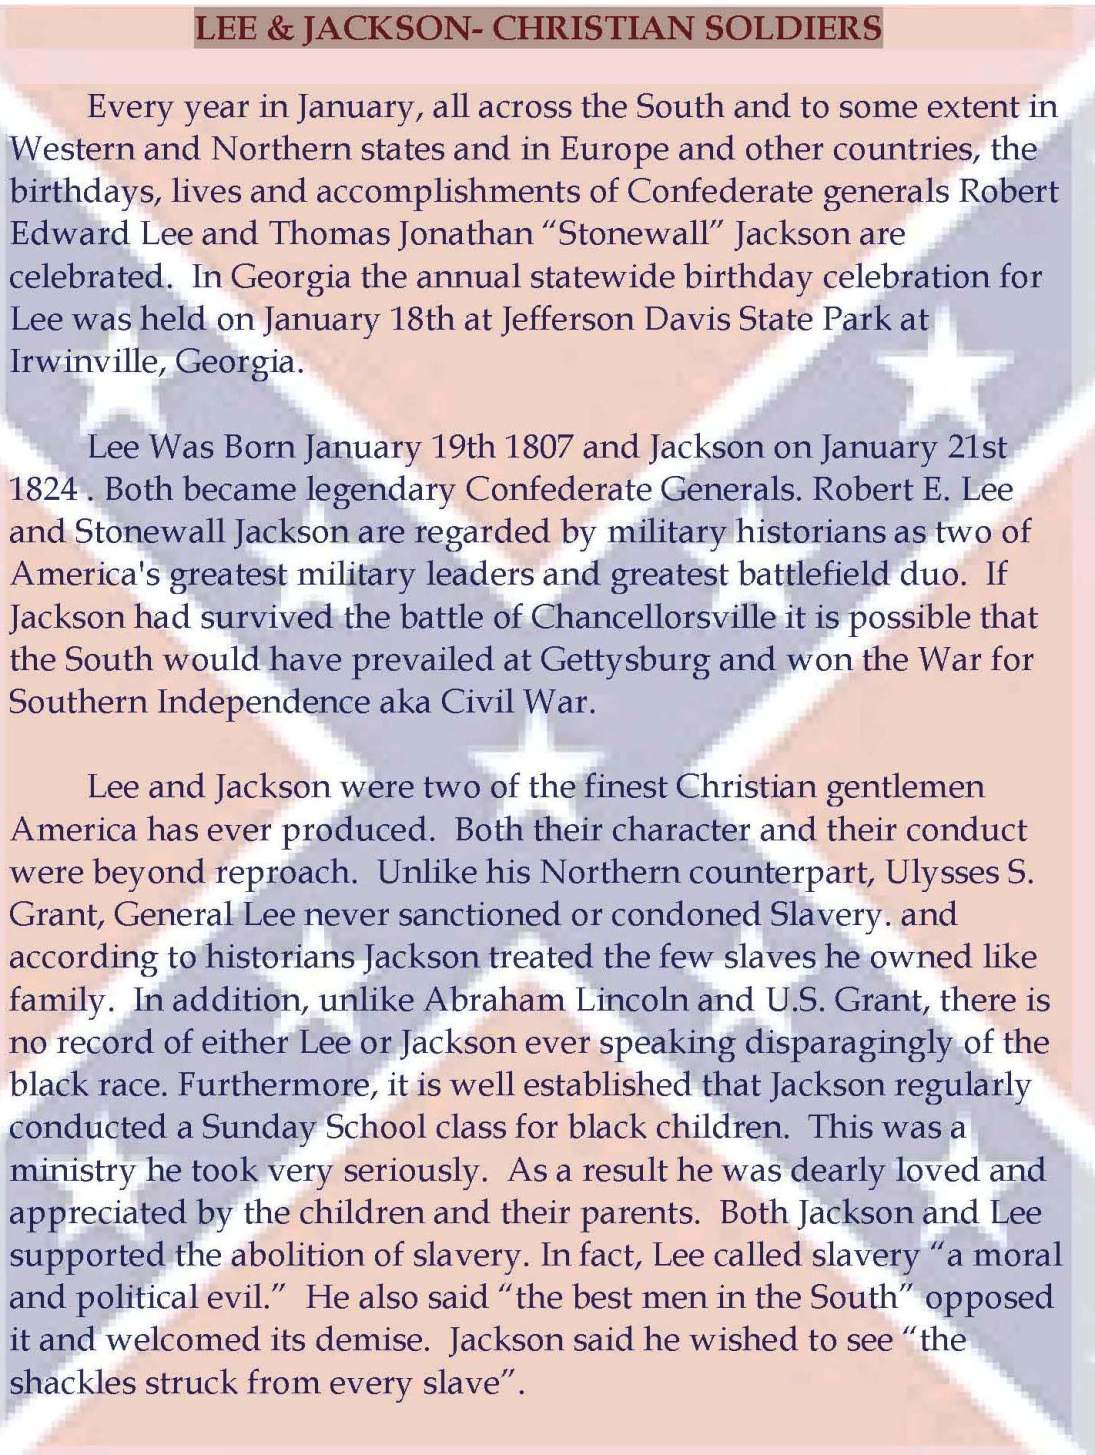 LEE-JACKSON-CHRISTIAN-SOLDIERS_Page_1